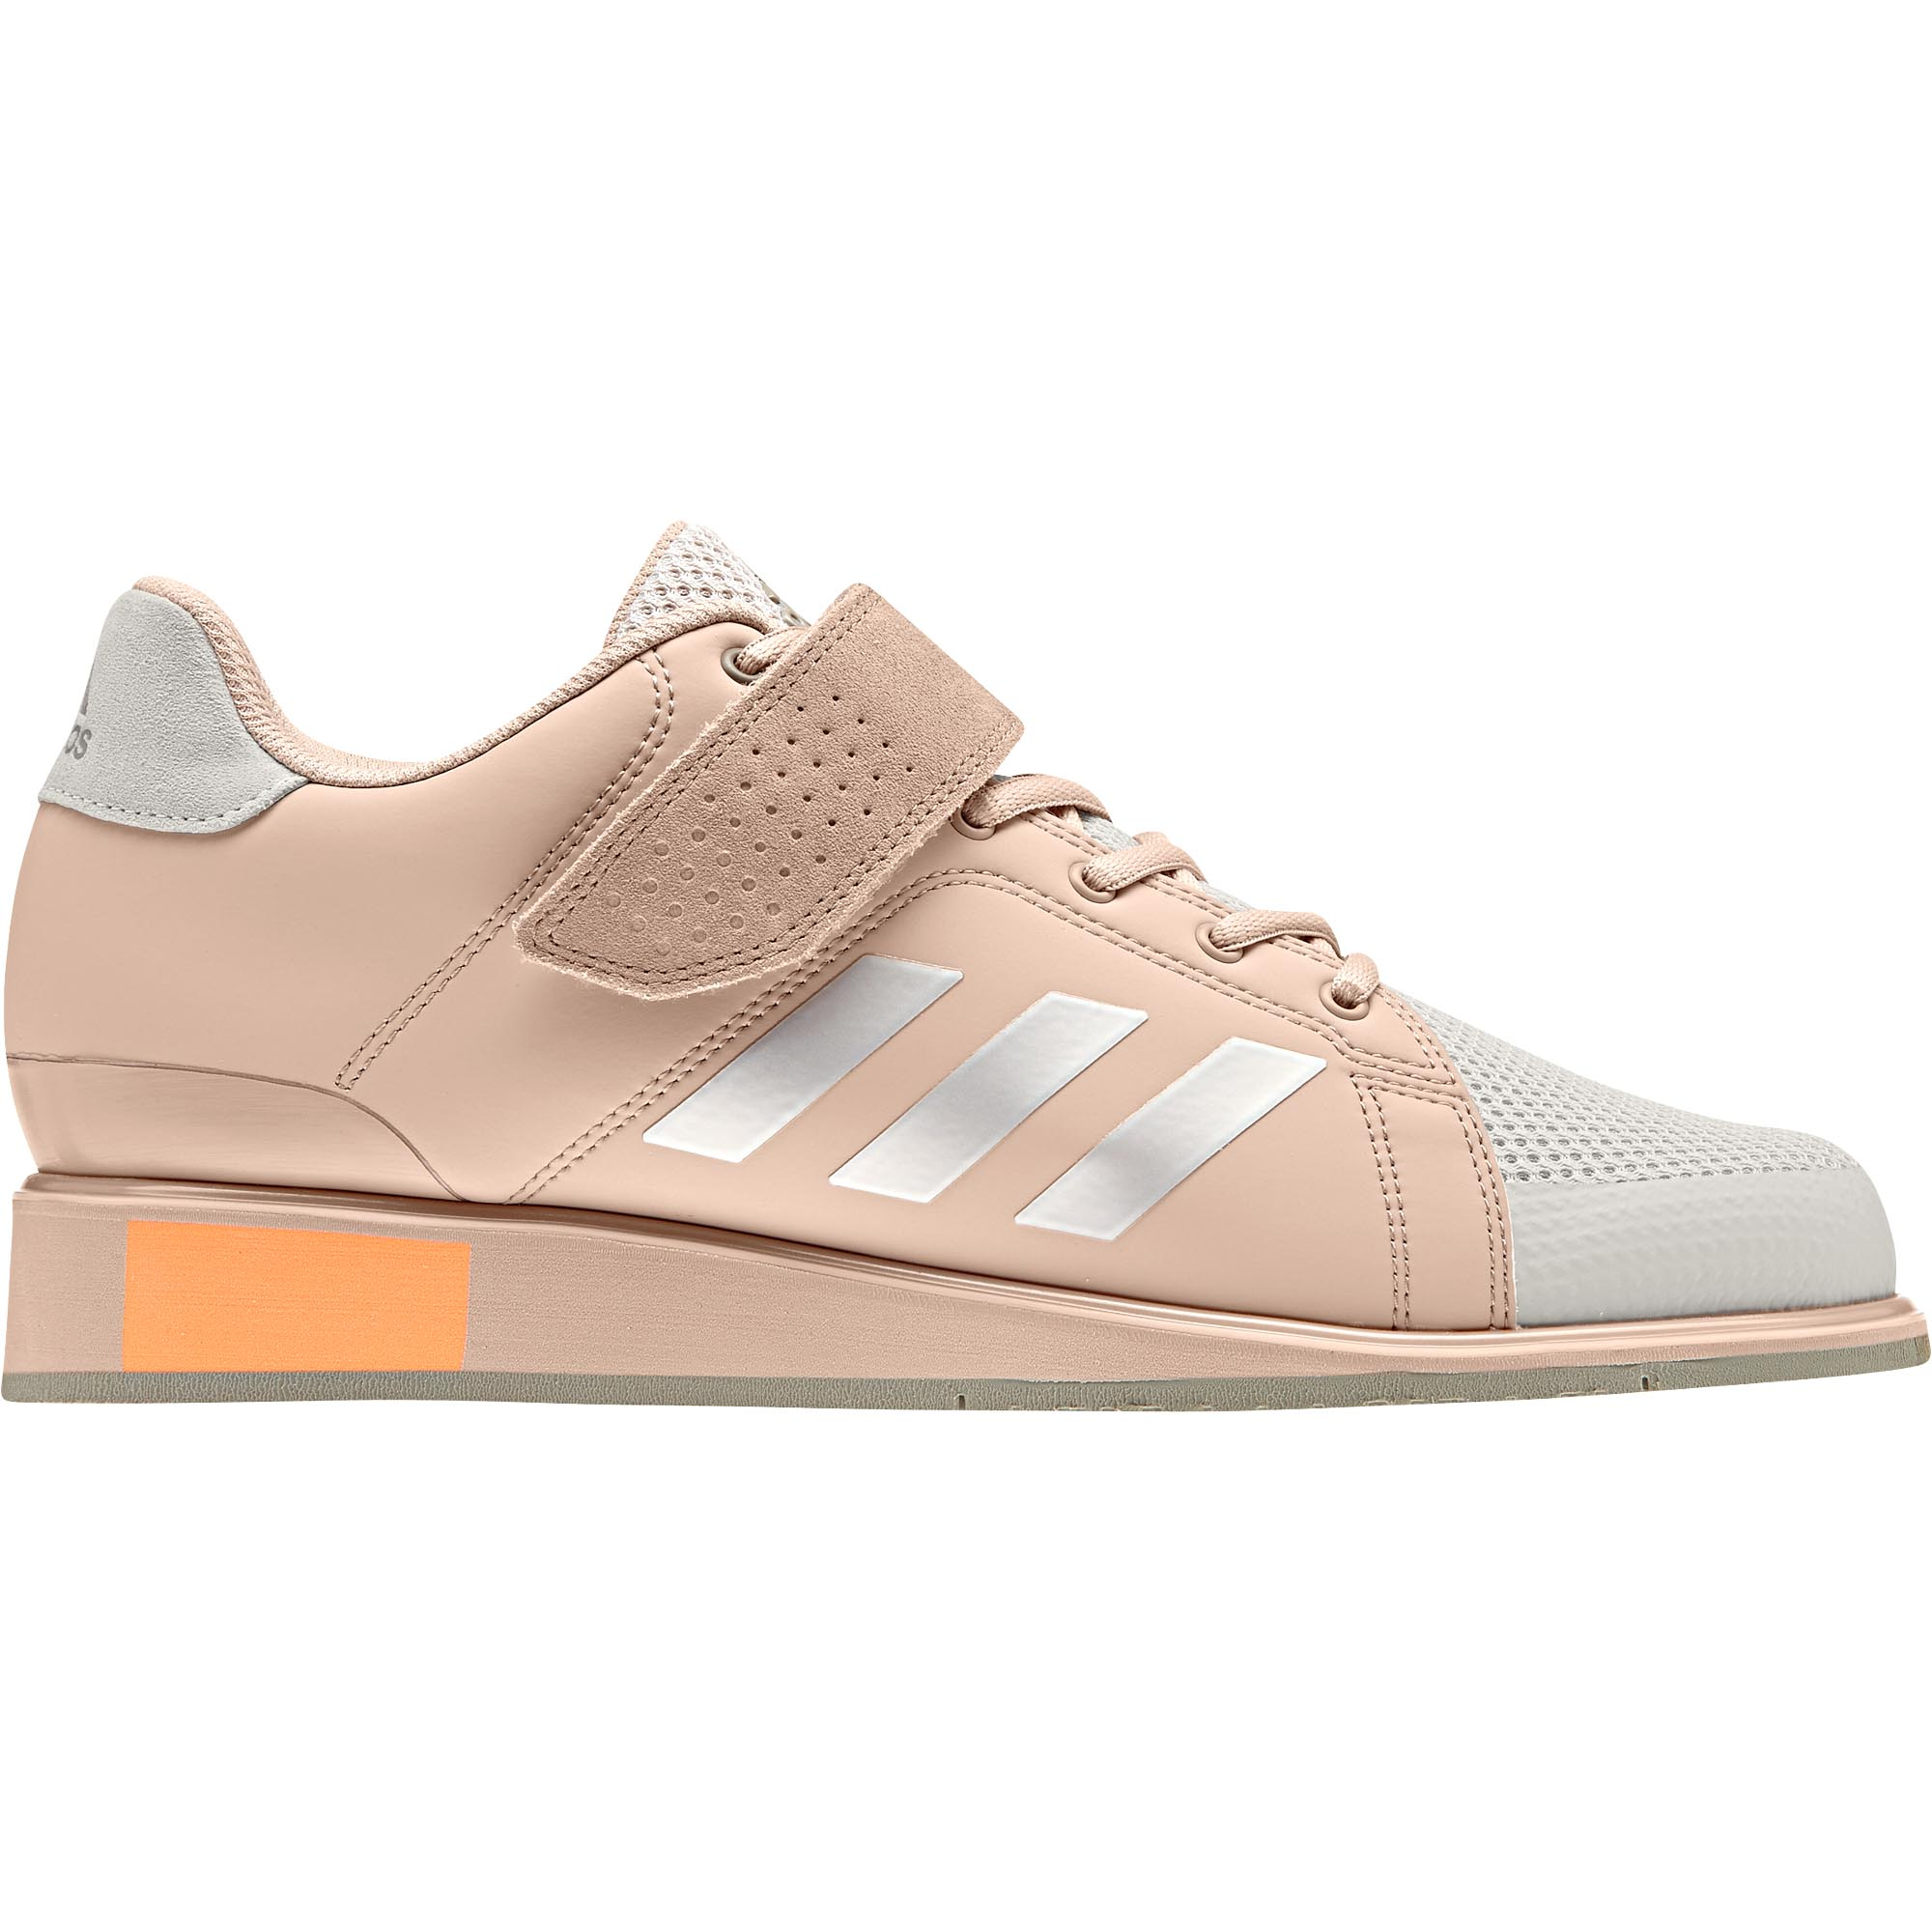 b7beb0f07790 Details about adidas Power Perfect III Womens Adult Weightlifting  Powerlifting Shoe Pink Pearl